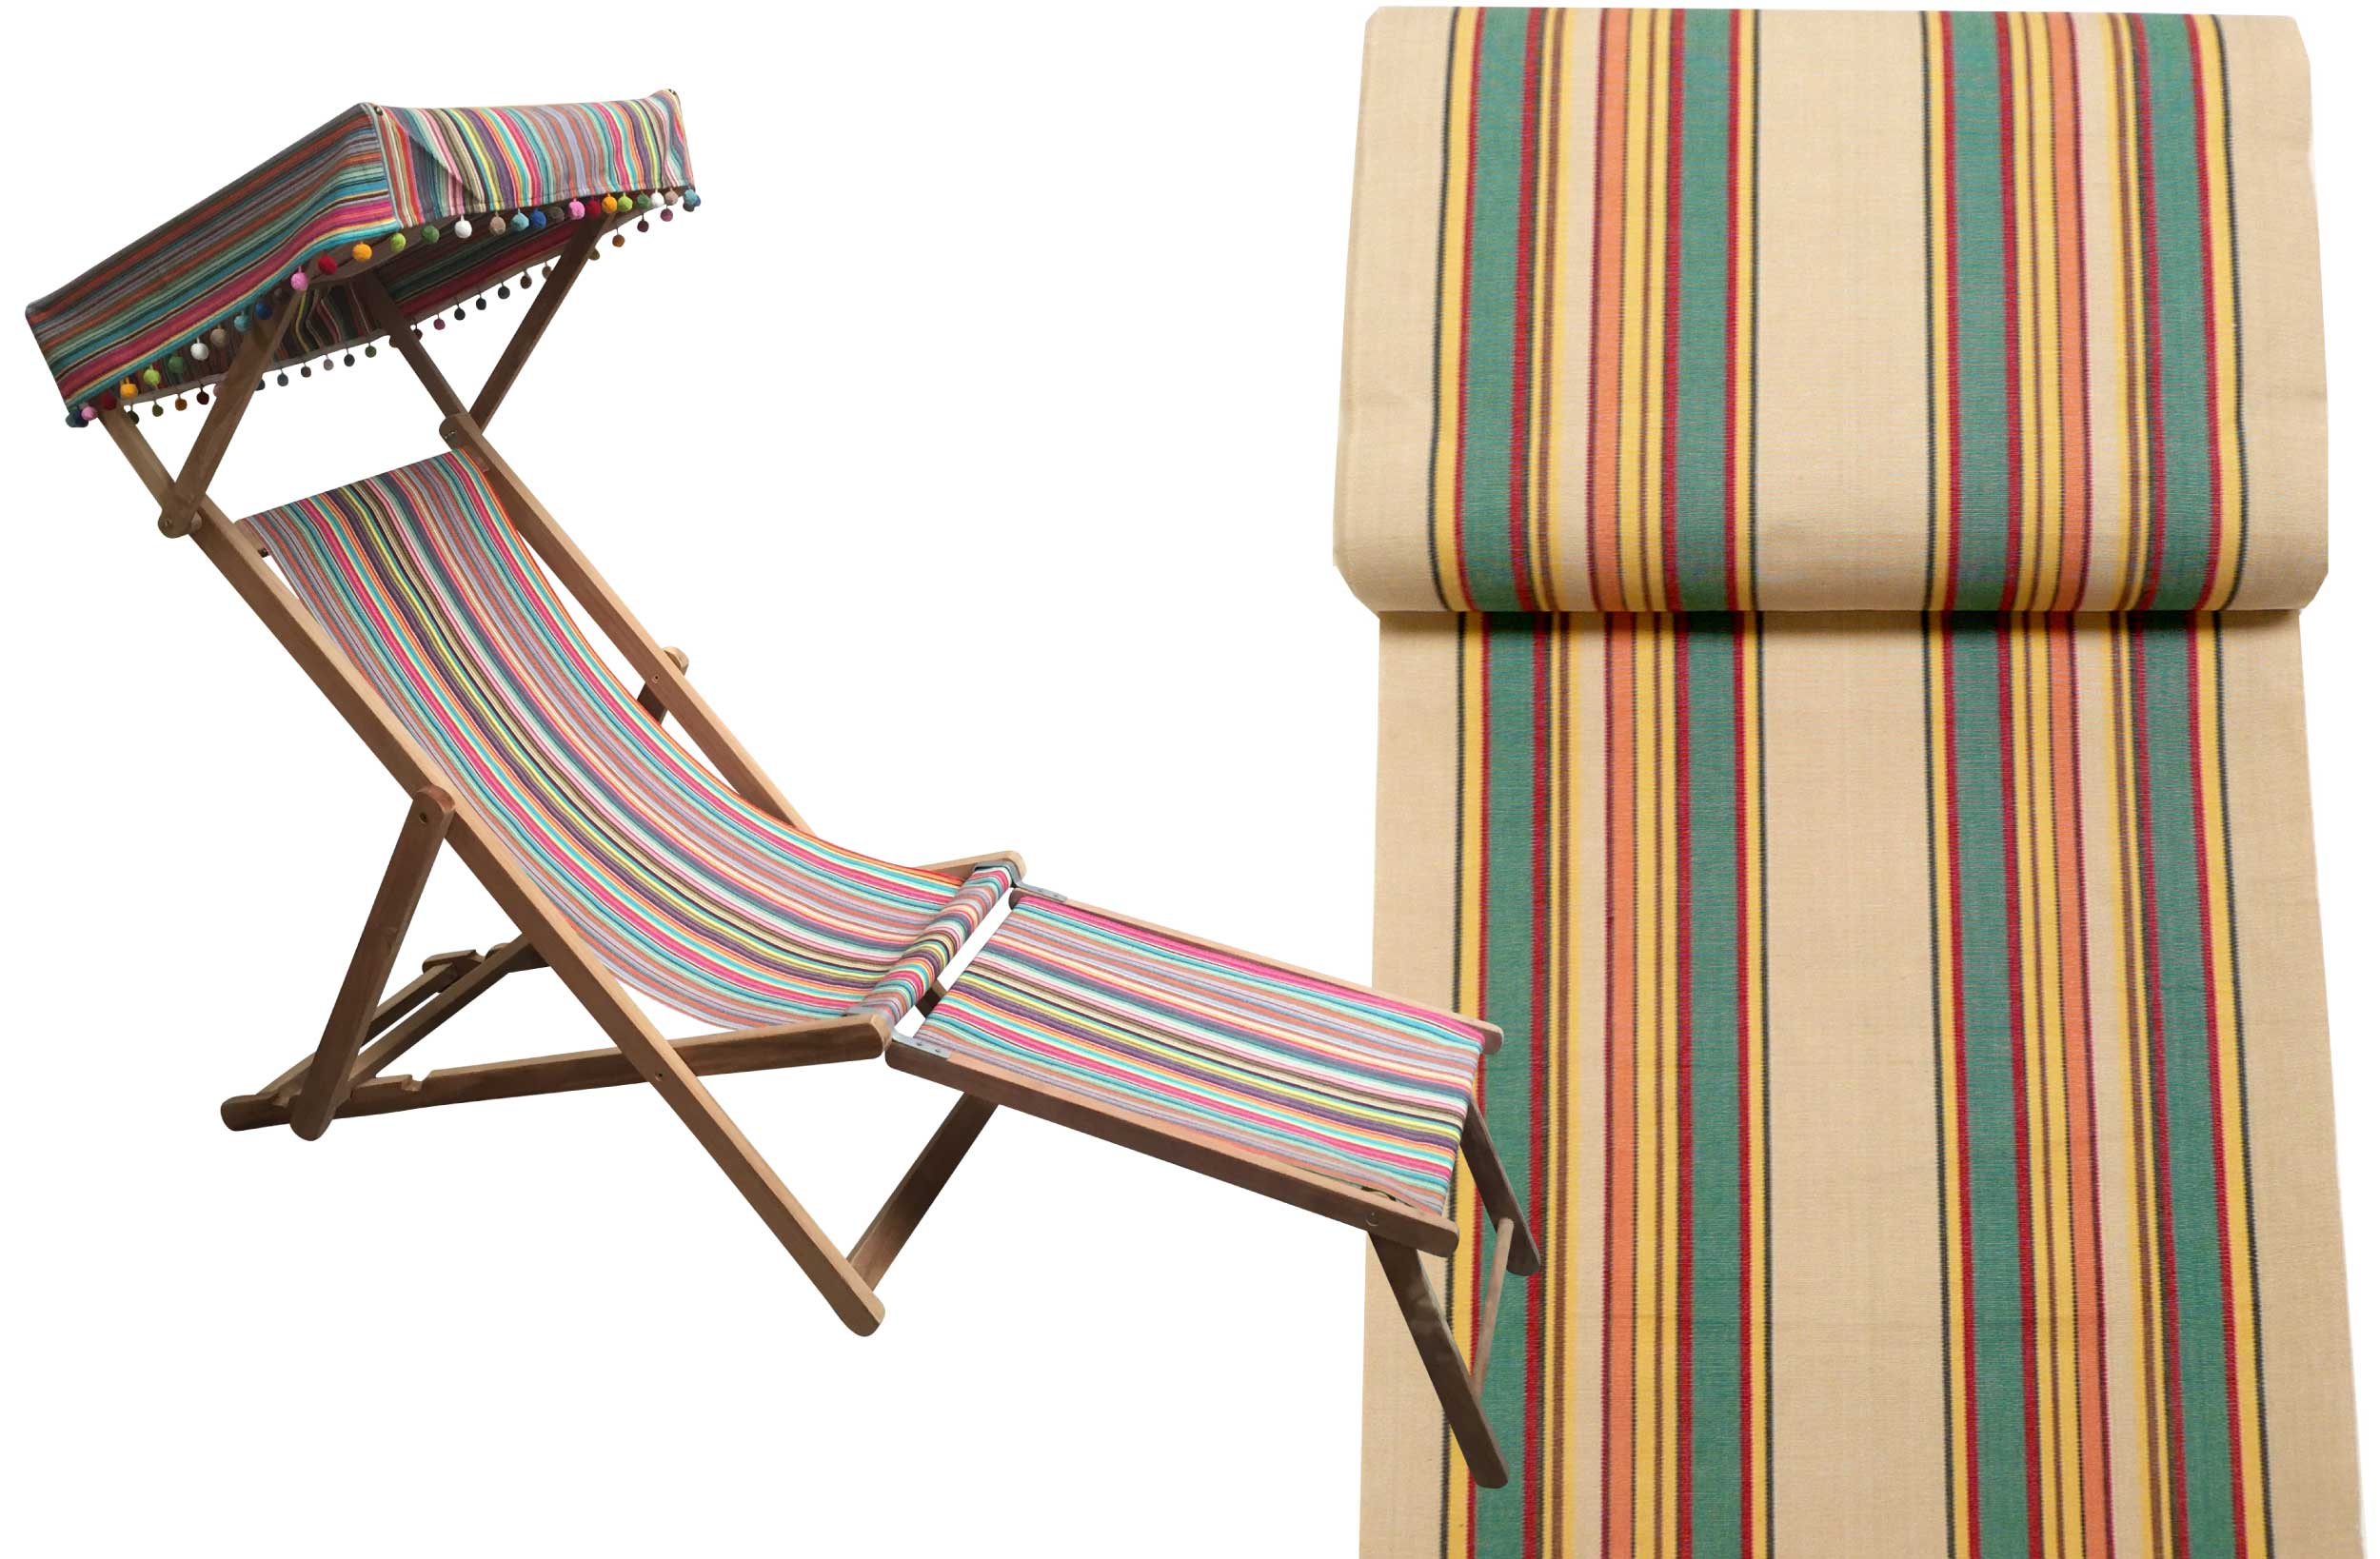 Edwardian Deckchair with Canopy and Footstool beige, jade green, red stripes